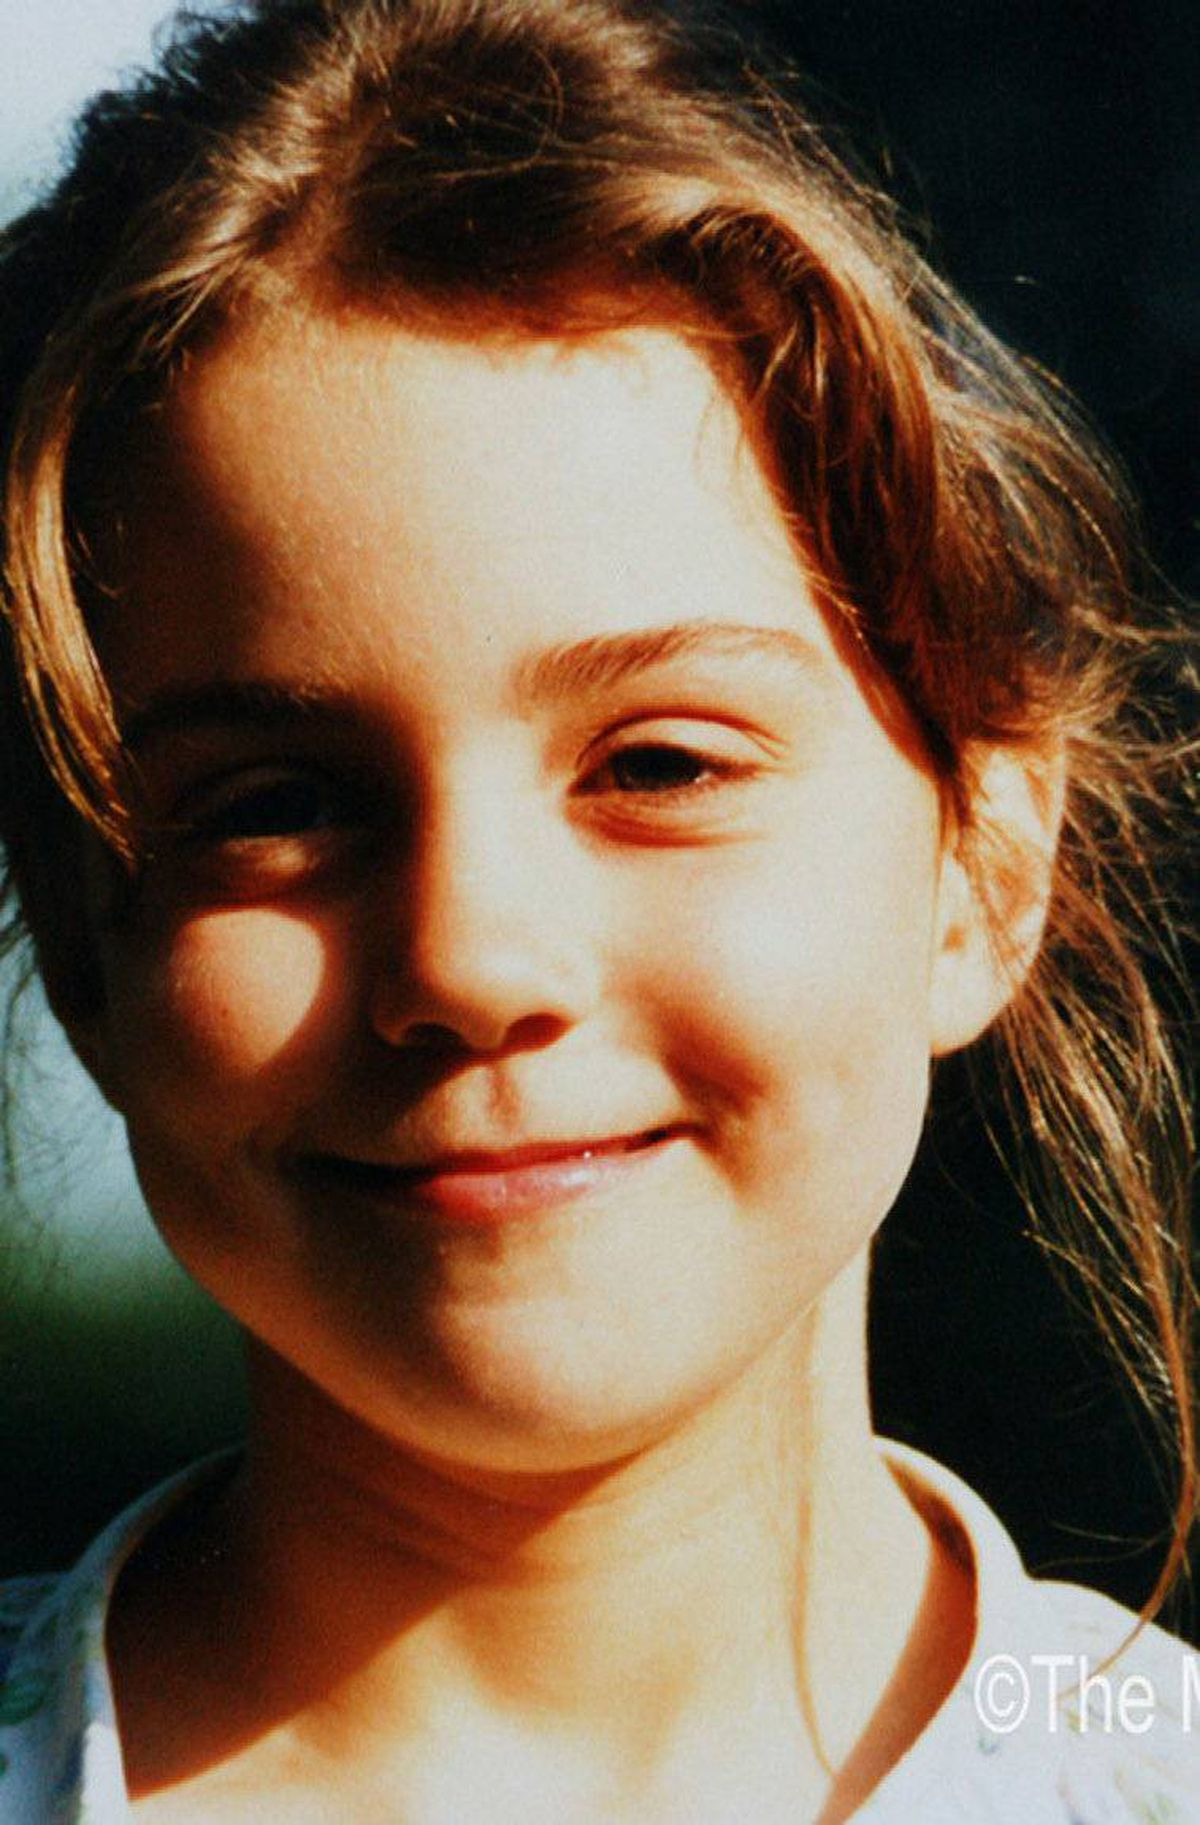 Kate Middleton, aged five. Family photos of Ms. Middleton were released Monday ahead of her wedding to Prince William next month.